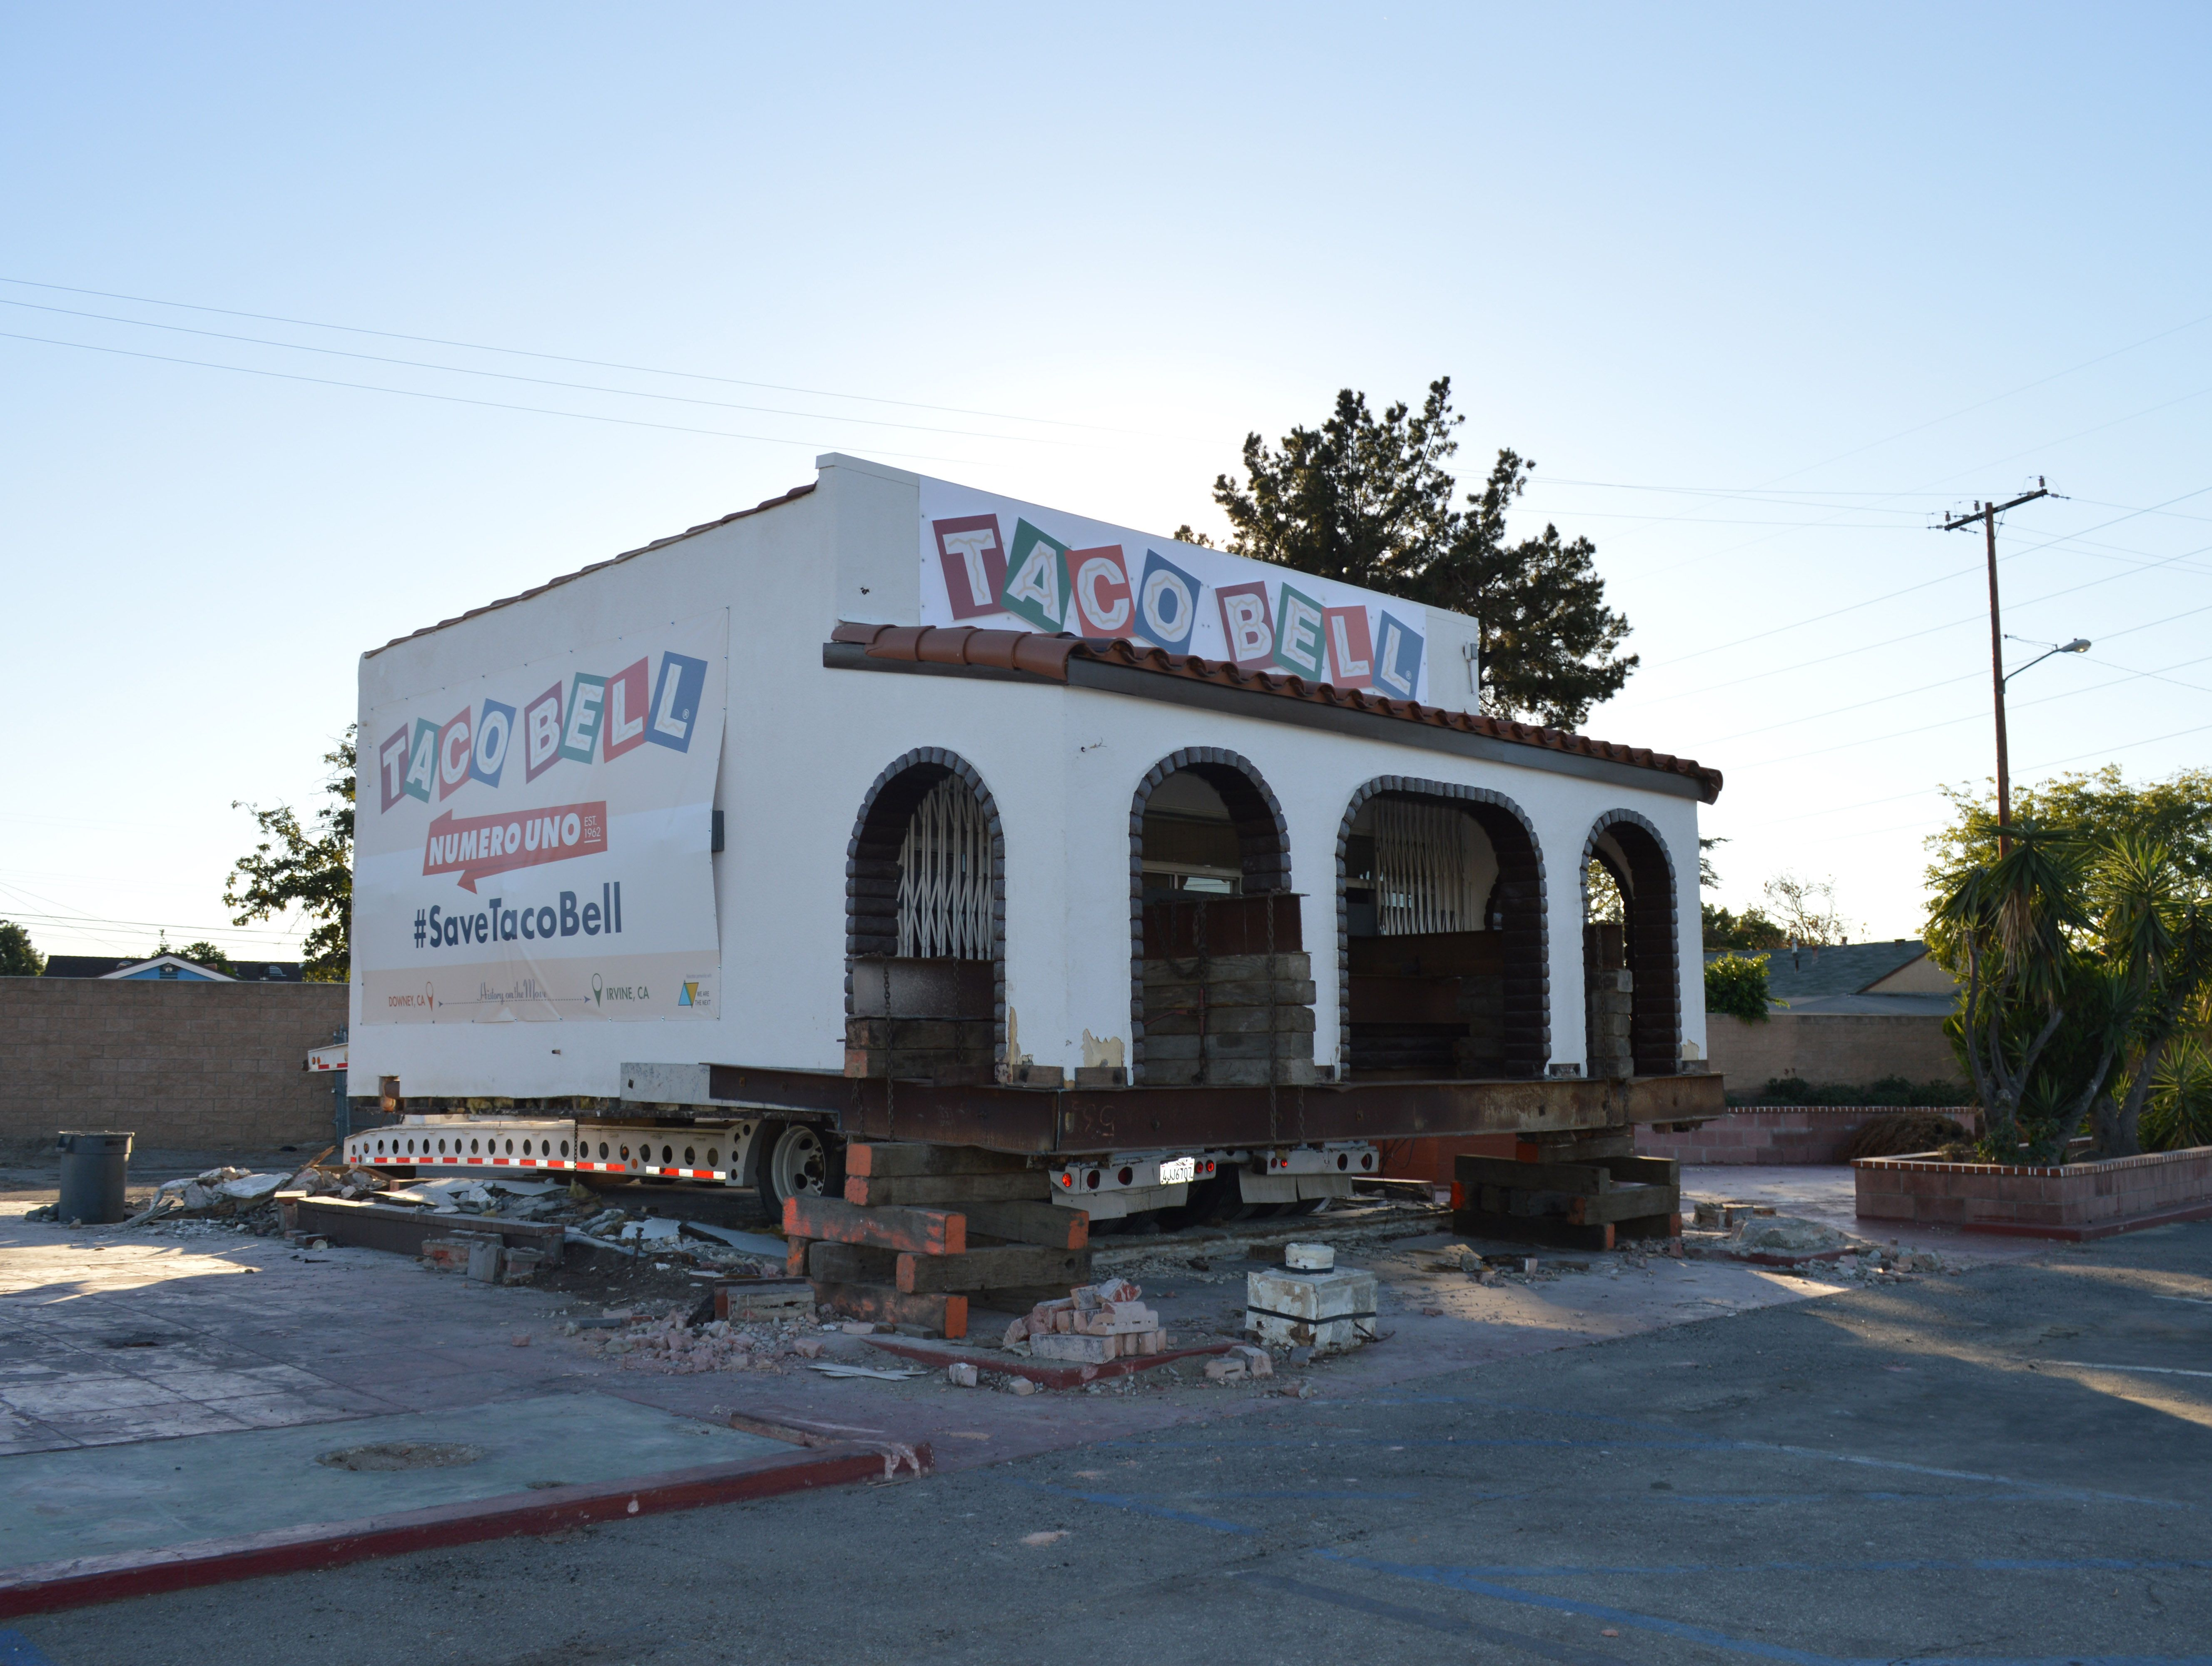 The fast food company is moving the 53-year-old building to Irvine on Thursday night